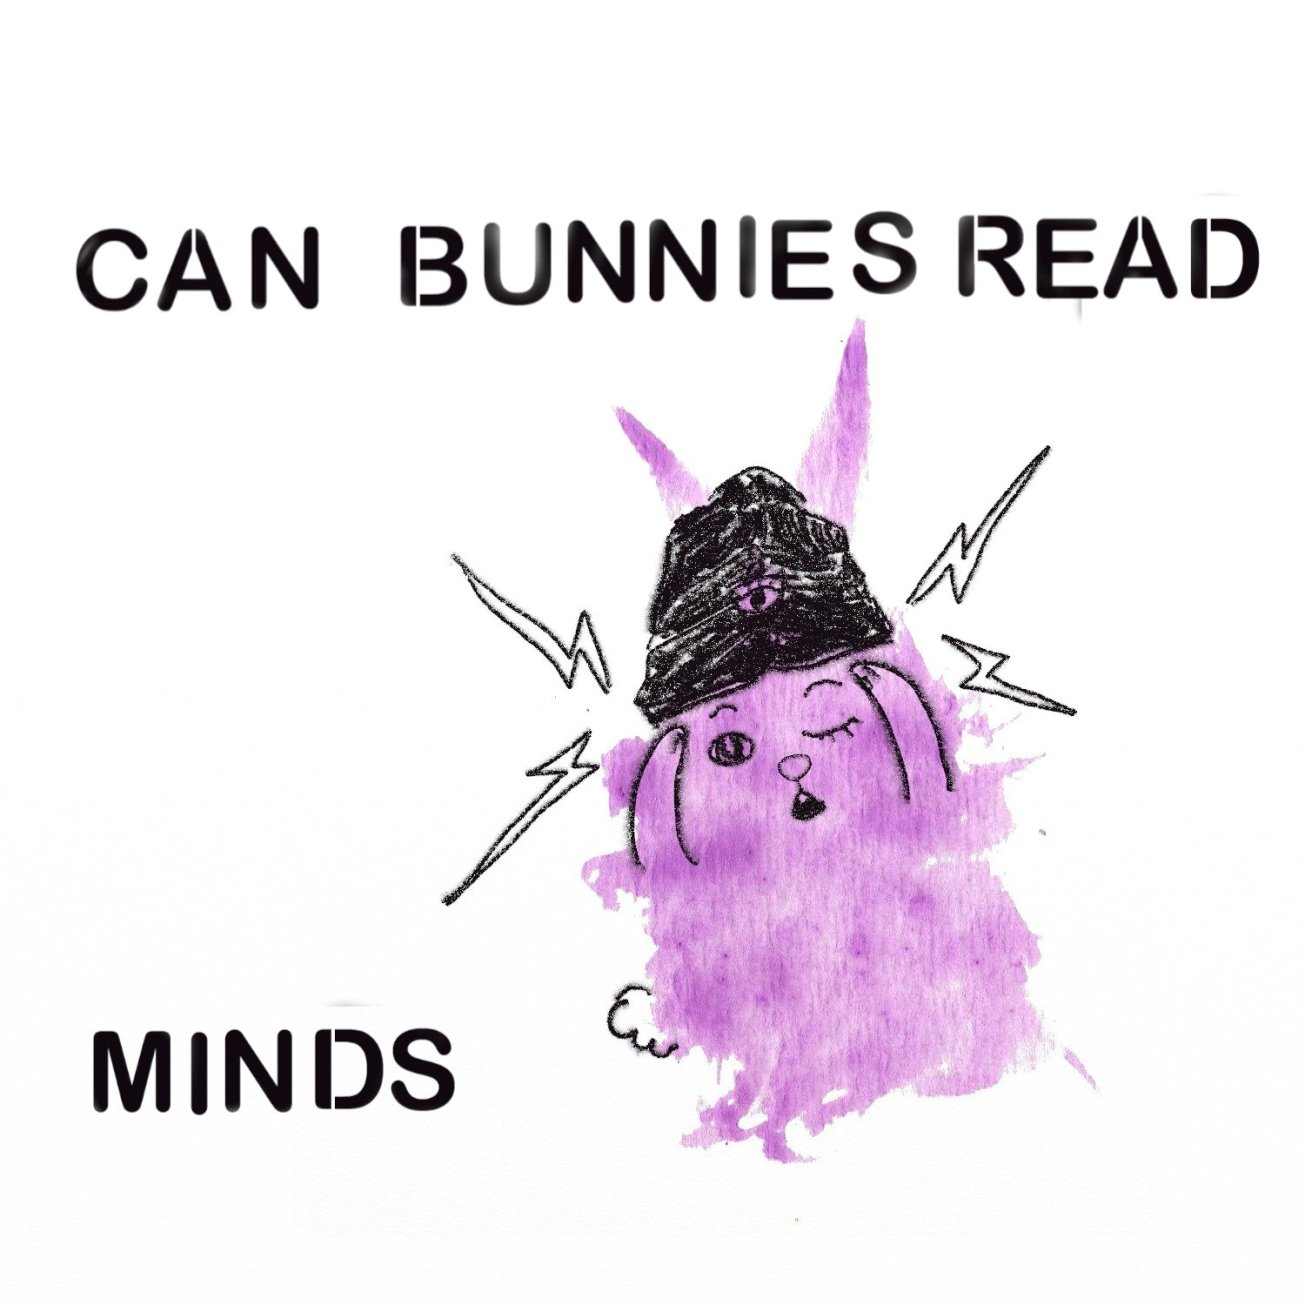 bunniesreadmindstext